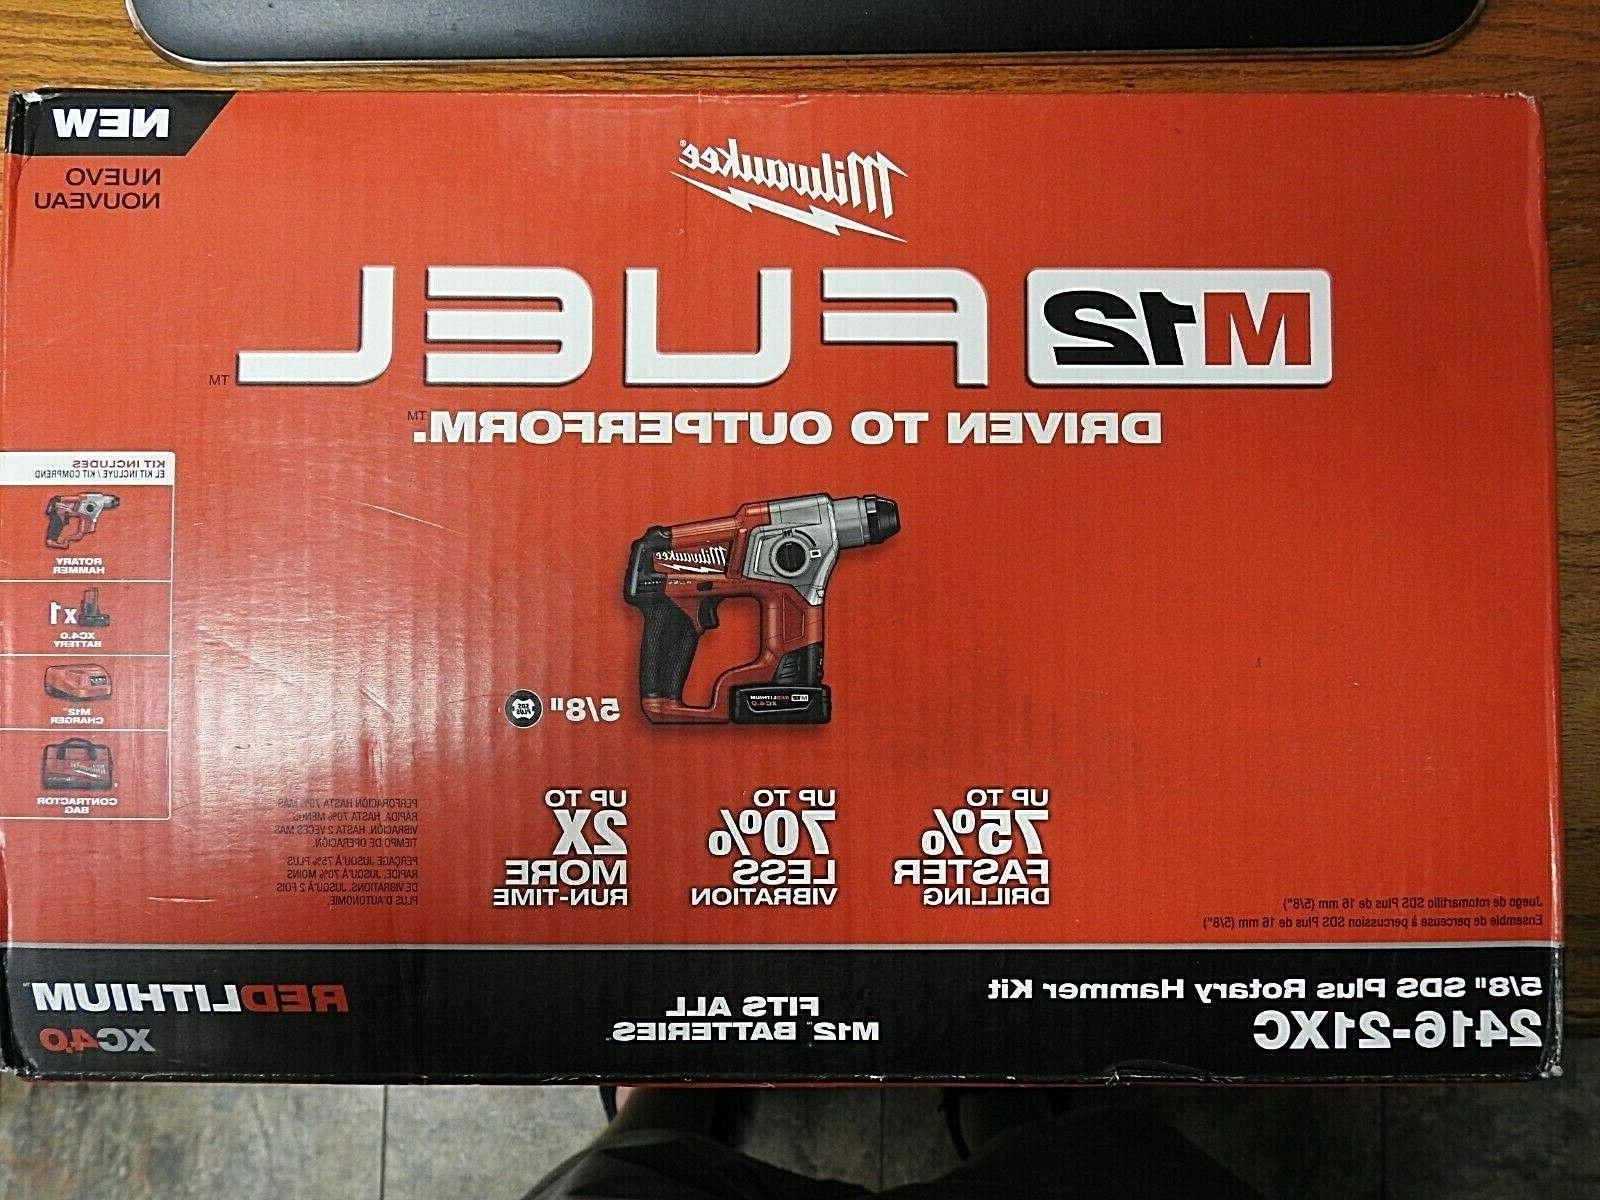 m12 fuel 5 8 inch rotary hammer